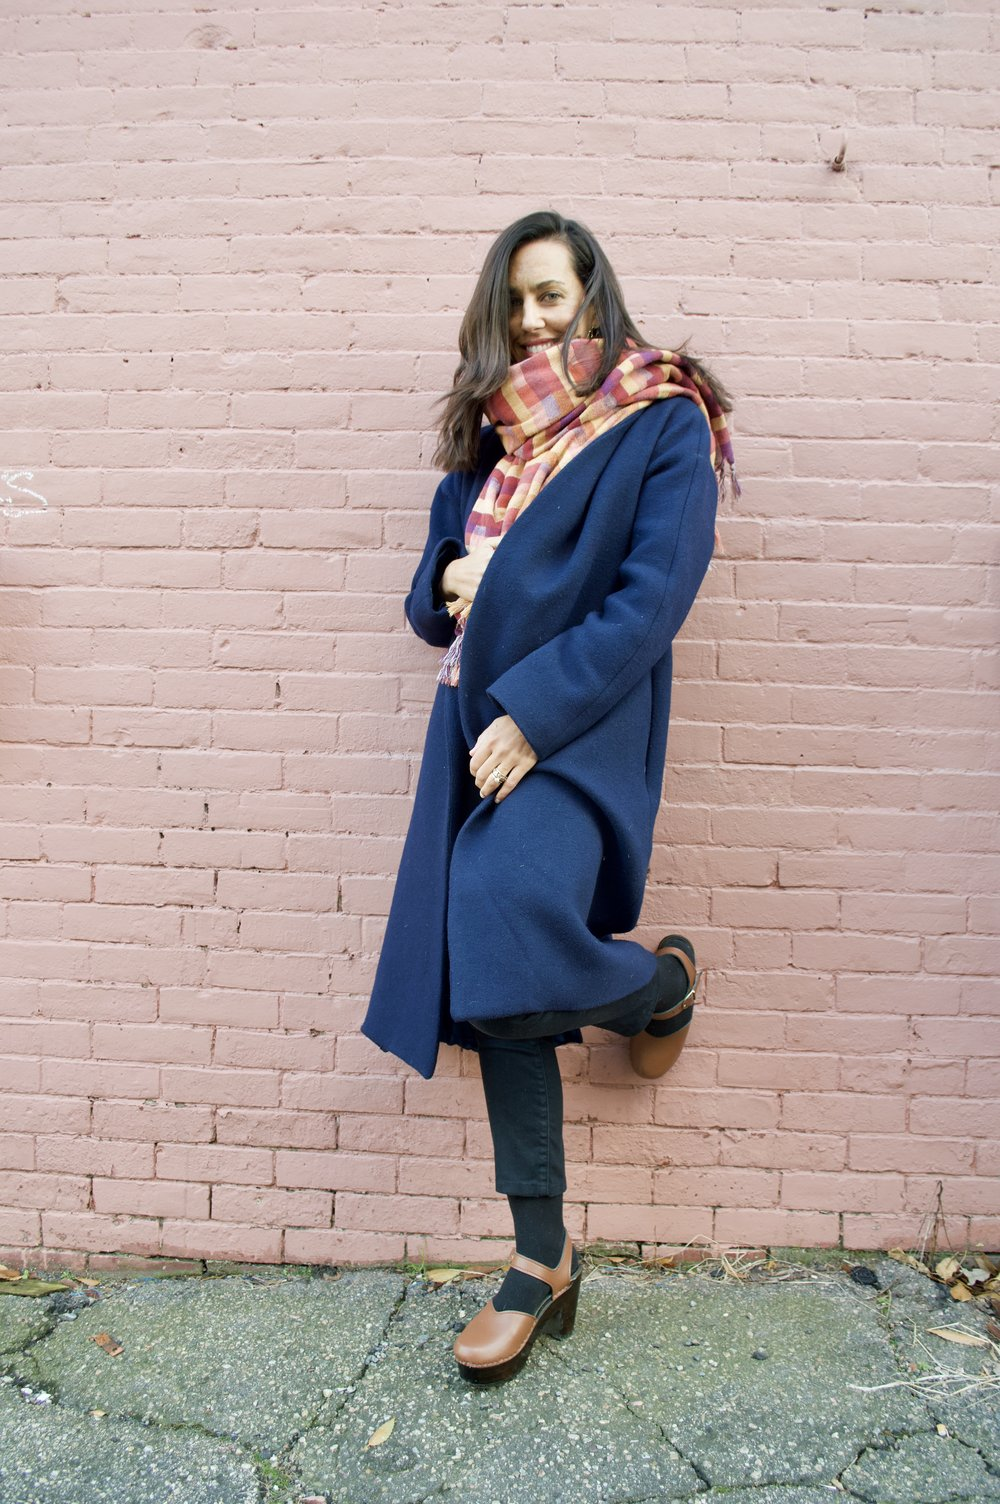 I'm wearing the Angela Heels by Nicora, Imogene and Willie denim, Reformation Coat, and scarf by Cuttalossa